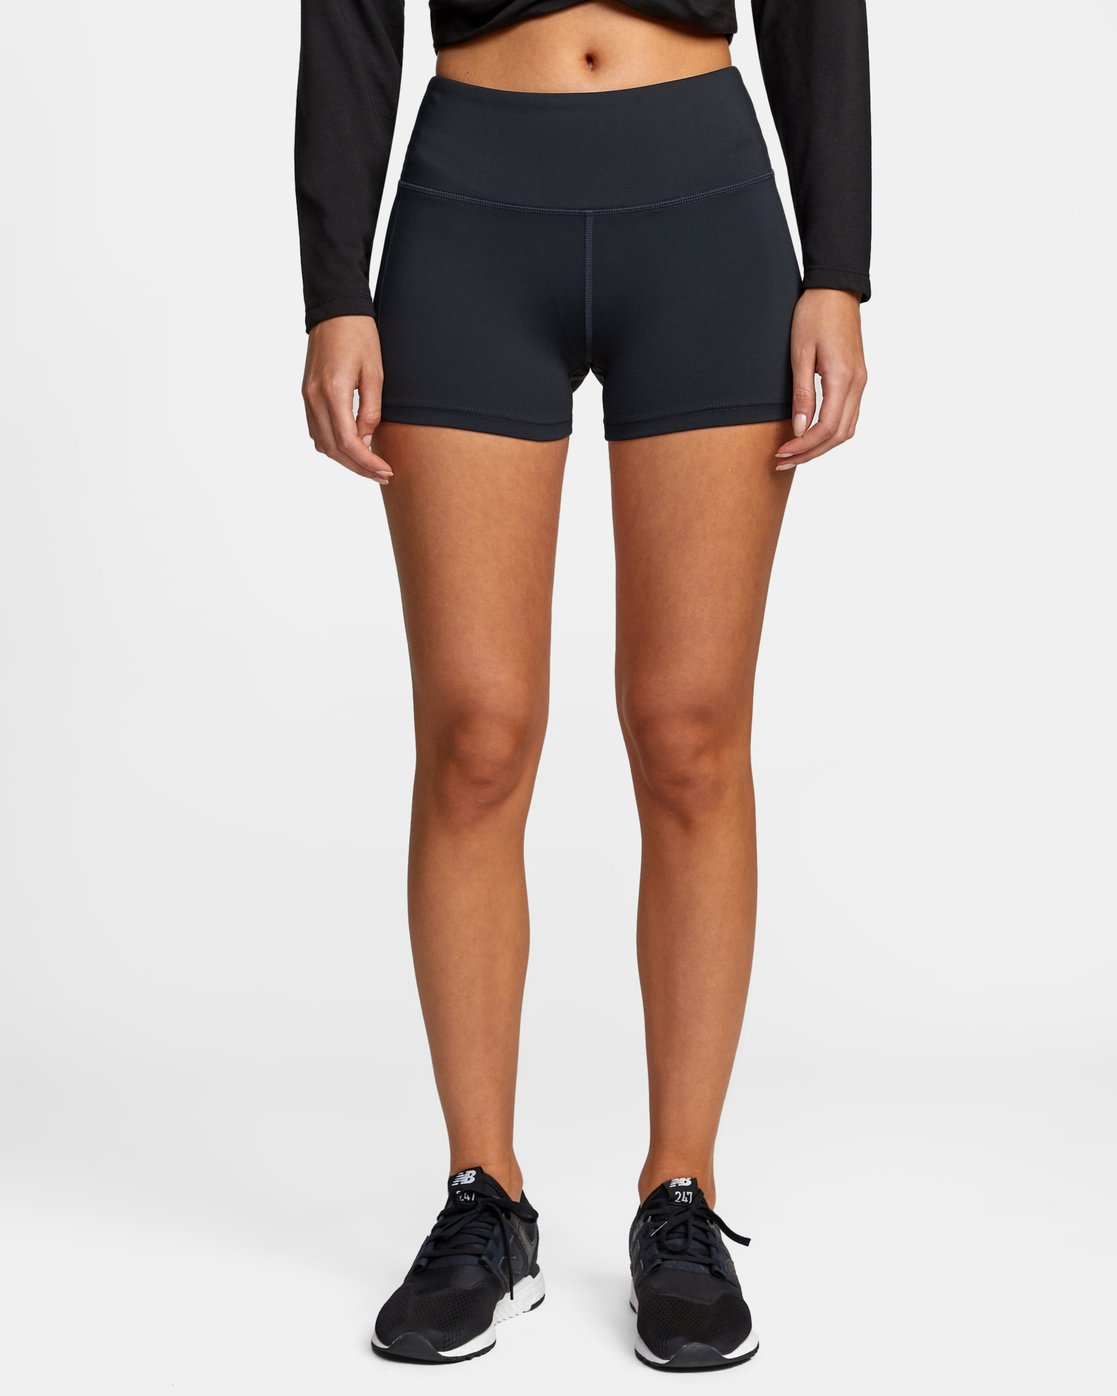 0 VA Fitted Short Black TQ51QRSH RVCA